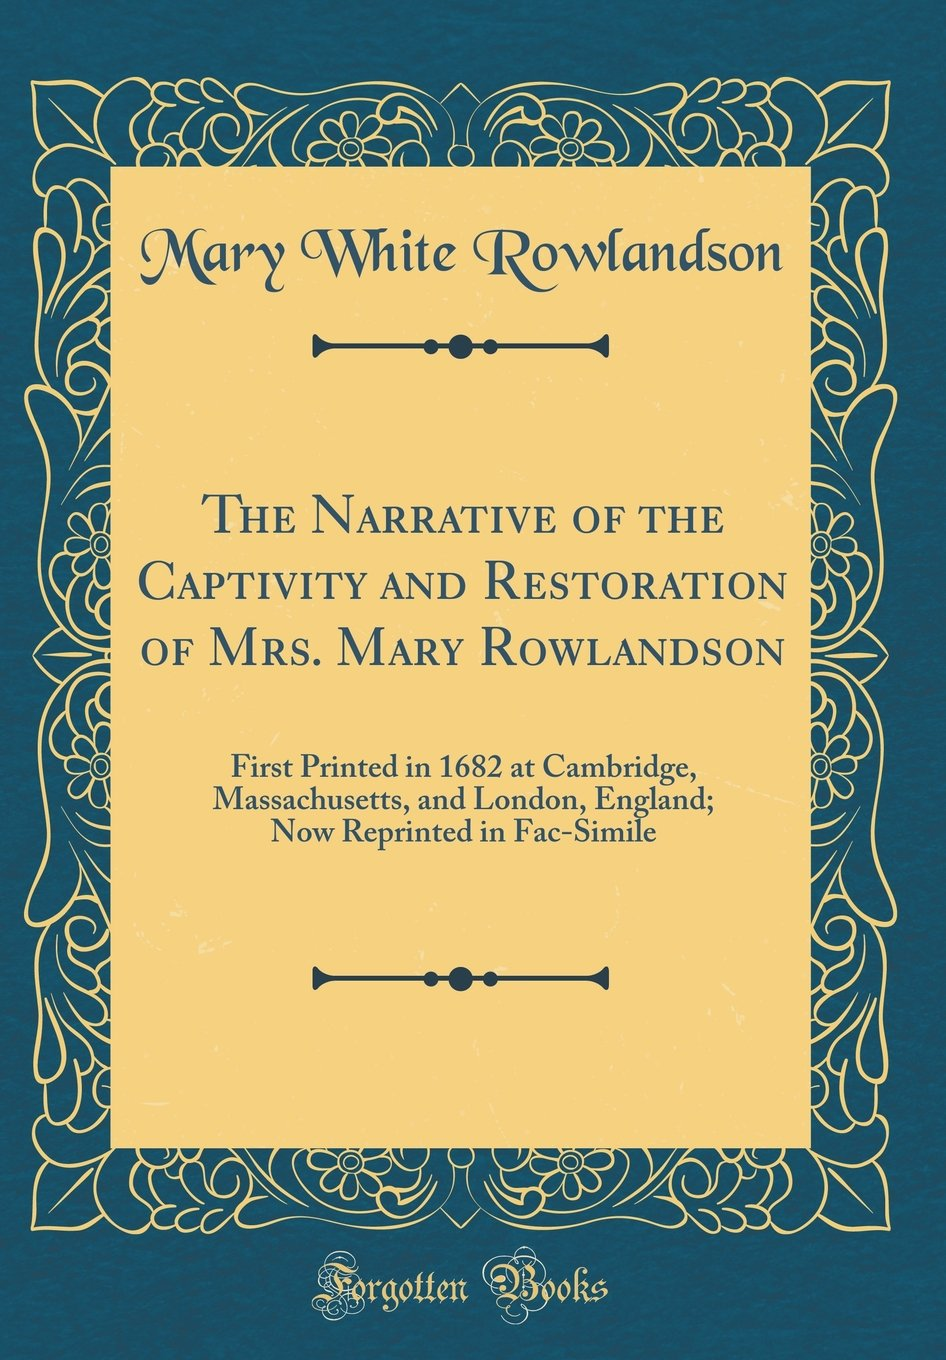 The Narrative of the Captivity and Restoration of Mrs. Mary Rowlandson: First Printed in 1682 at Cambridge, Massachusetts, and London, England; Now Reprinted in Fac-Simile (Classic Reprint)